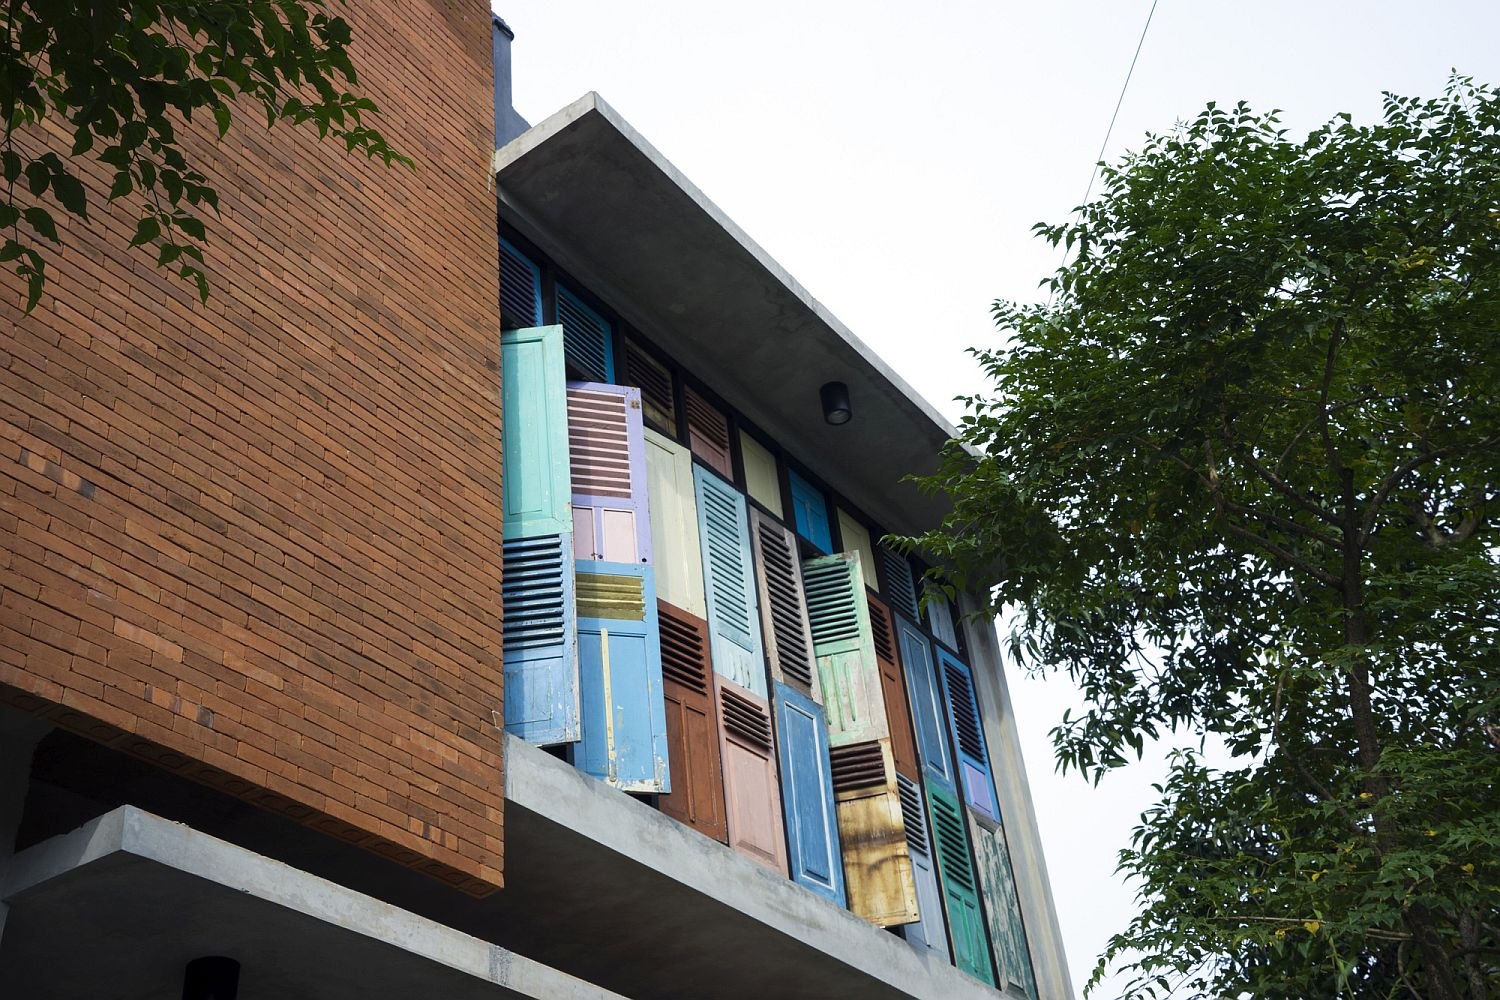 Wooden panels and reclaimed shutters give the building a unique facade